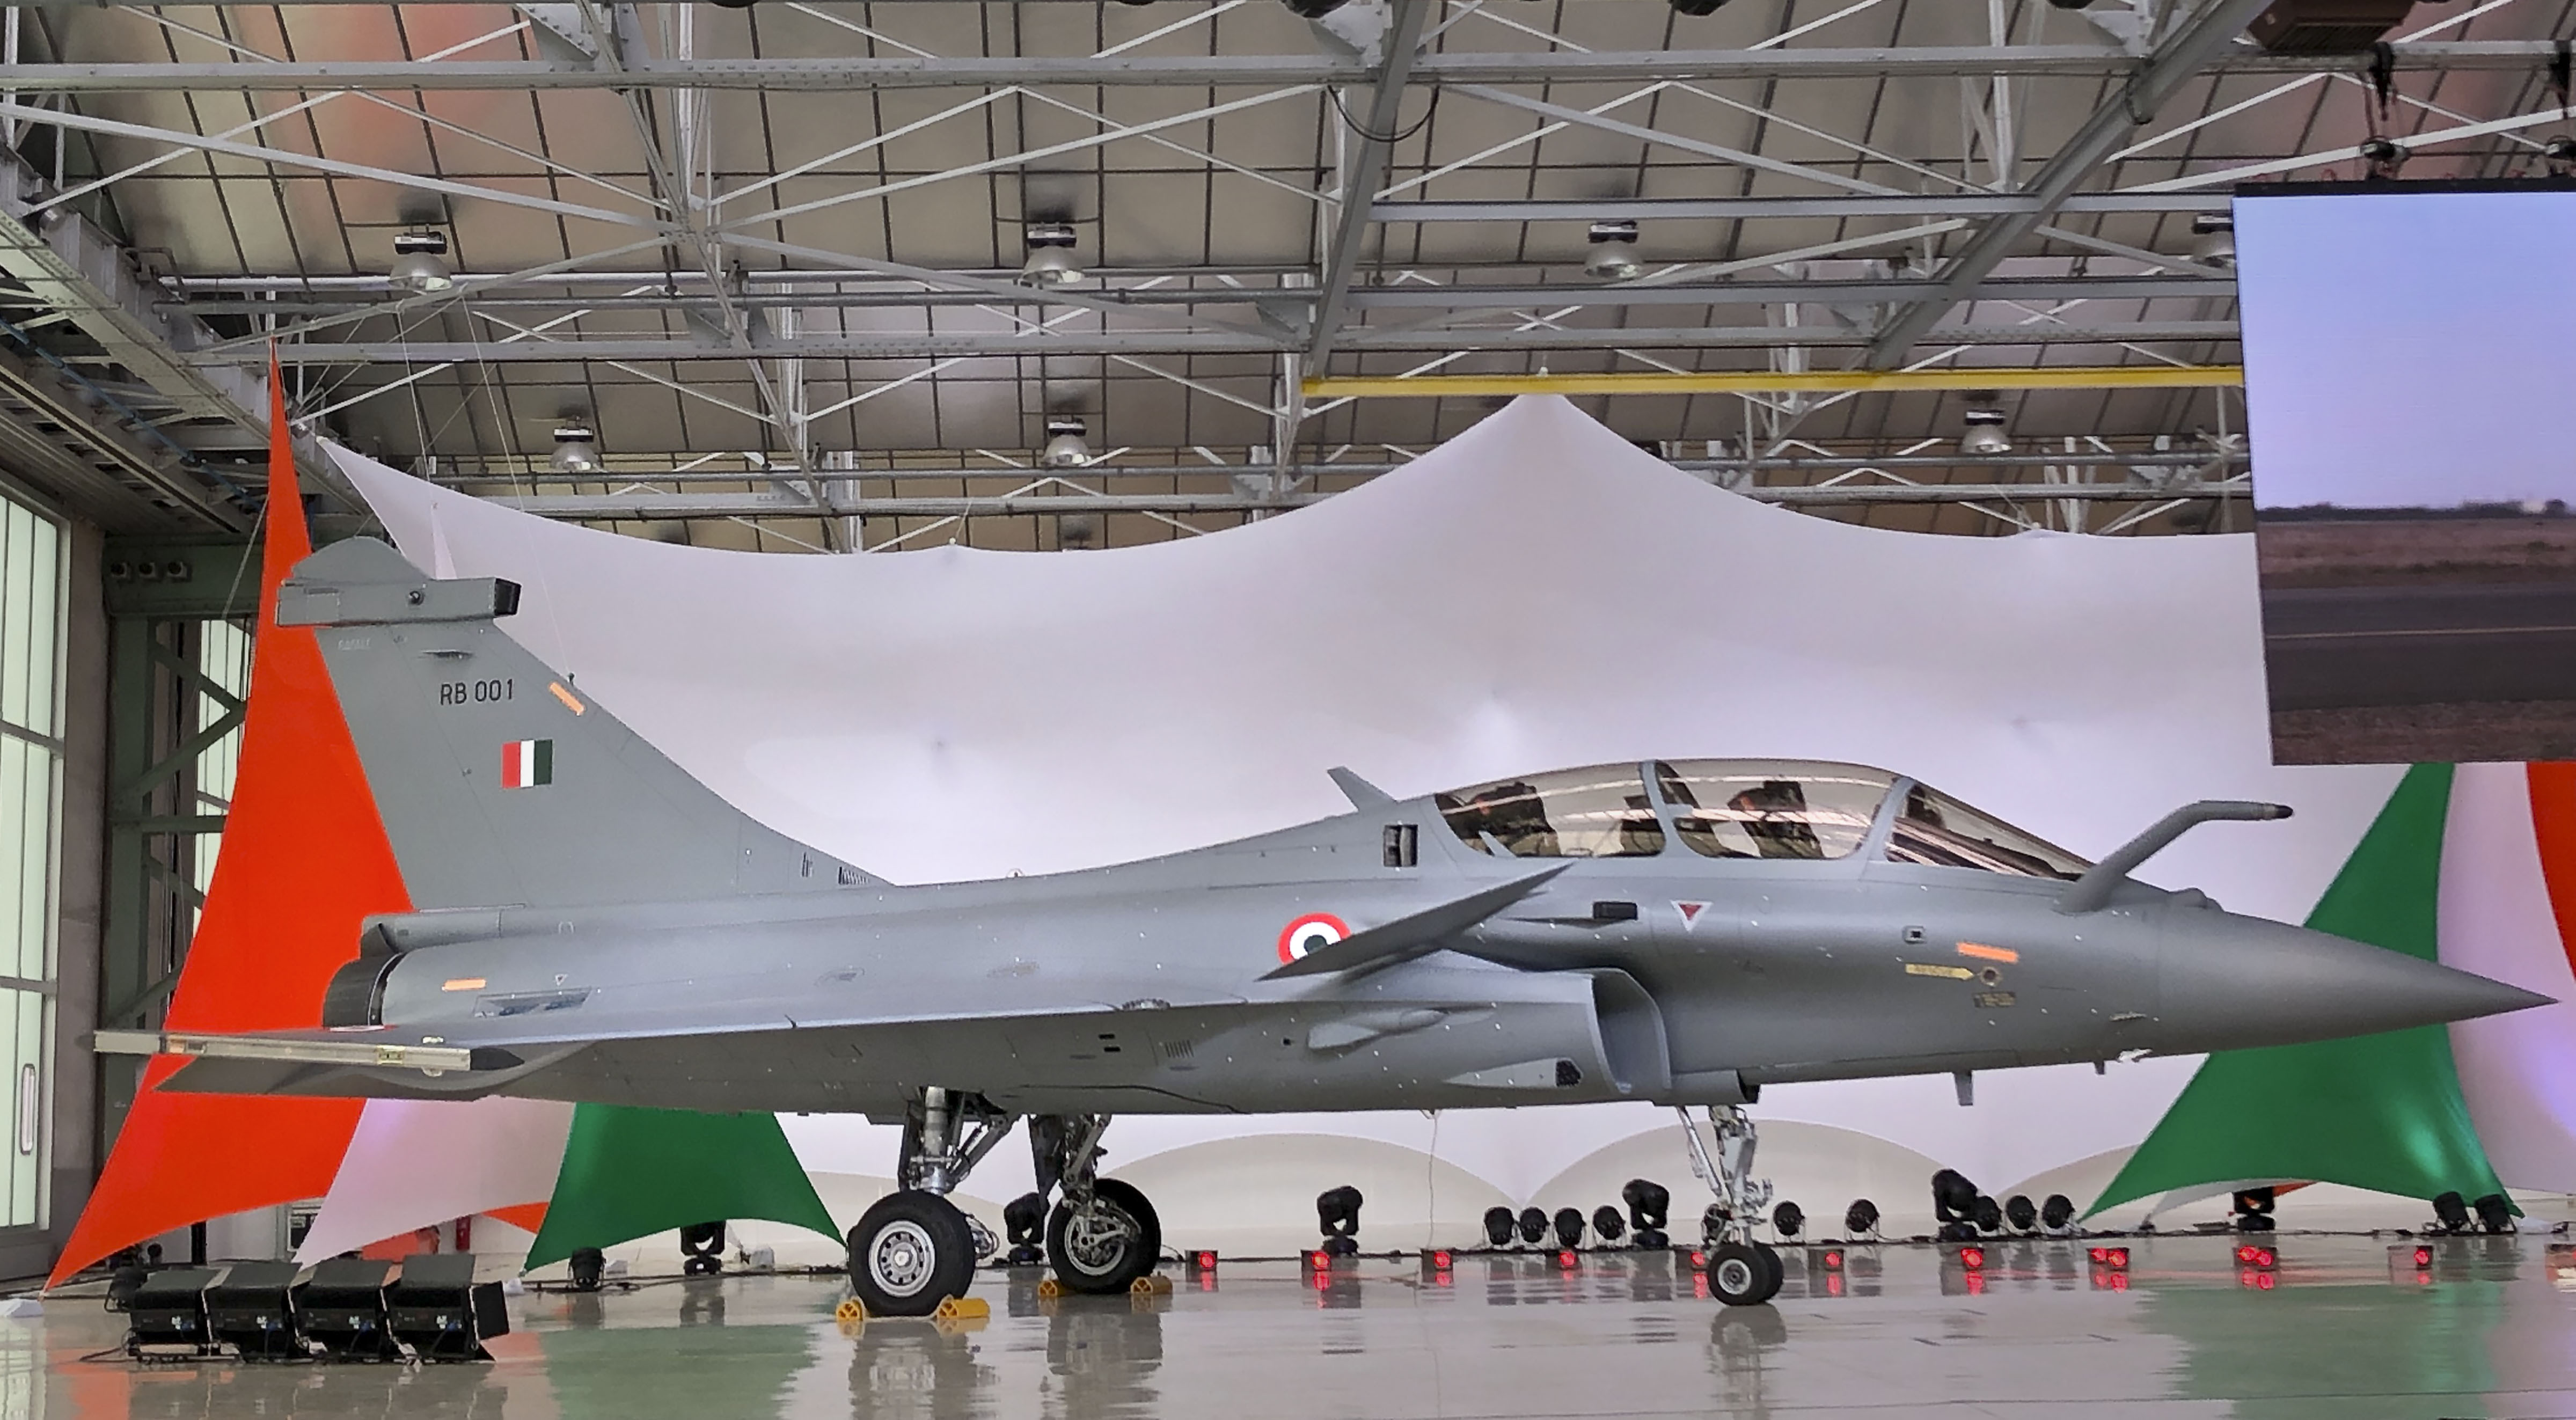 A view of the Rafale jet at its Dassault Aviation assembly line, in Bordeaux, France, Tuesday, October 8, 2019.